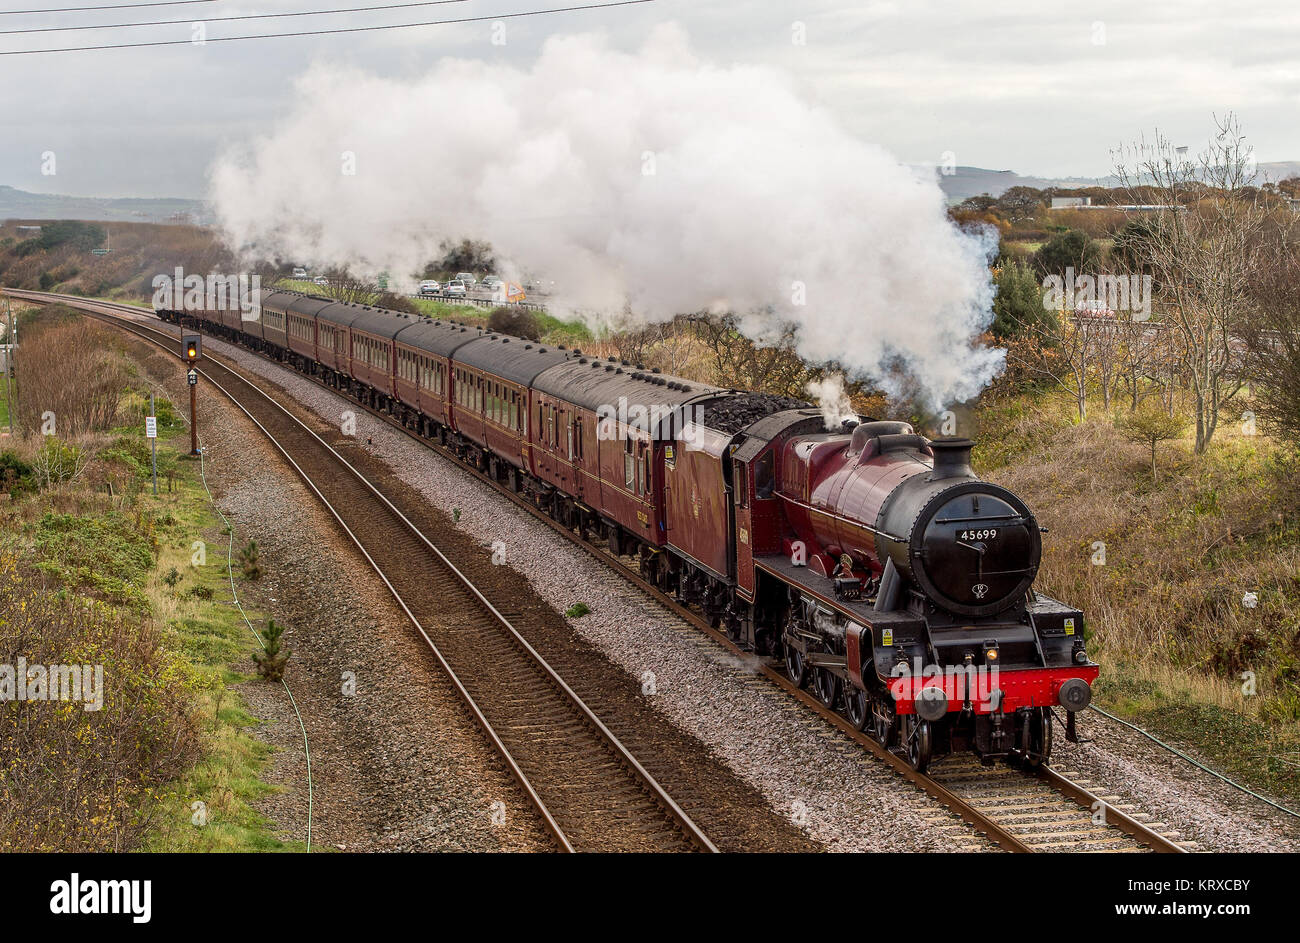 Conway, Wales, UK. 18th Nov, 2017. LMS Stanier Jubilee 45699 Galatea Travels on the North Wales Railway Line.45699 - Stock Image